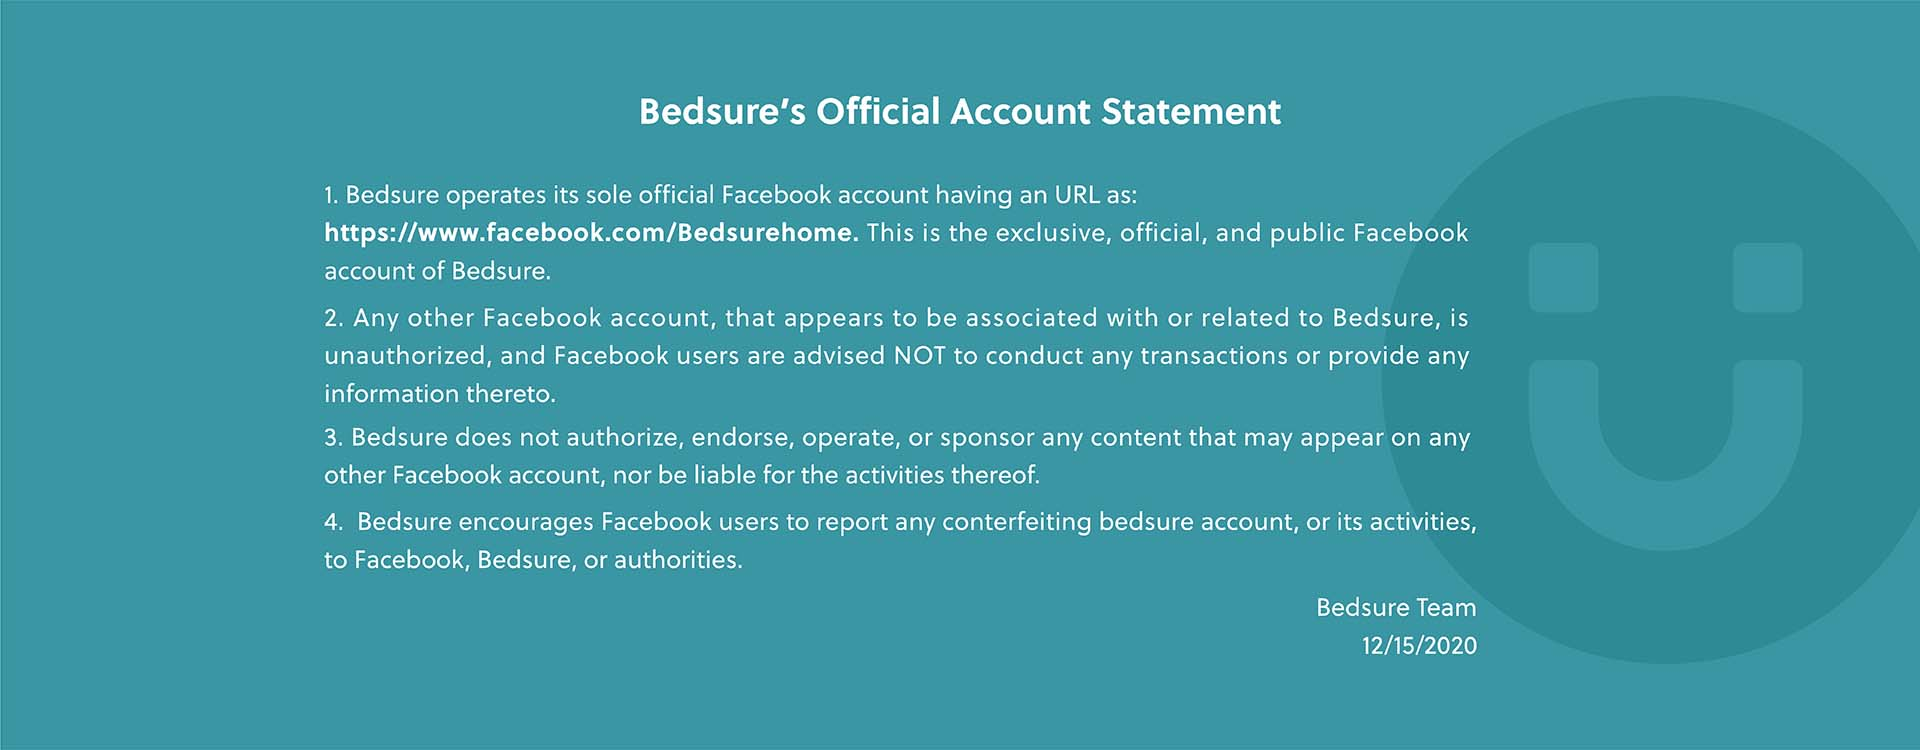 Bedsure's Official Account Statement  1. Bedsure operates its sole official Facebook account having an URL as: https://www.facebook.com/Bedsurehome. This is the exclusive, official, and public Facebook account of Bedsure. 2.Any other Facebook account